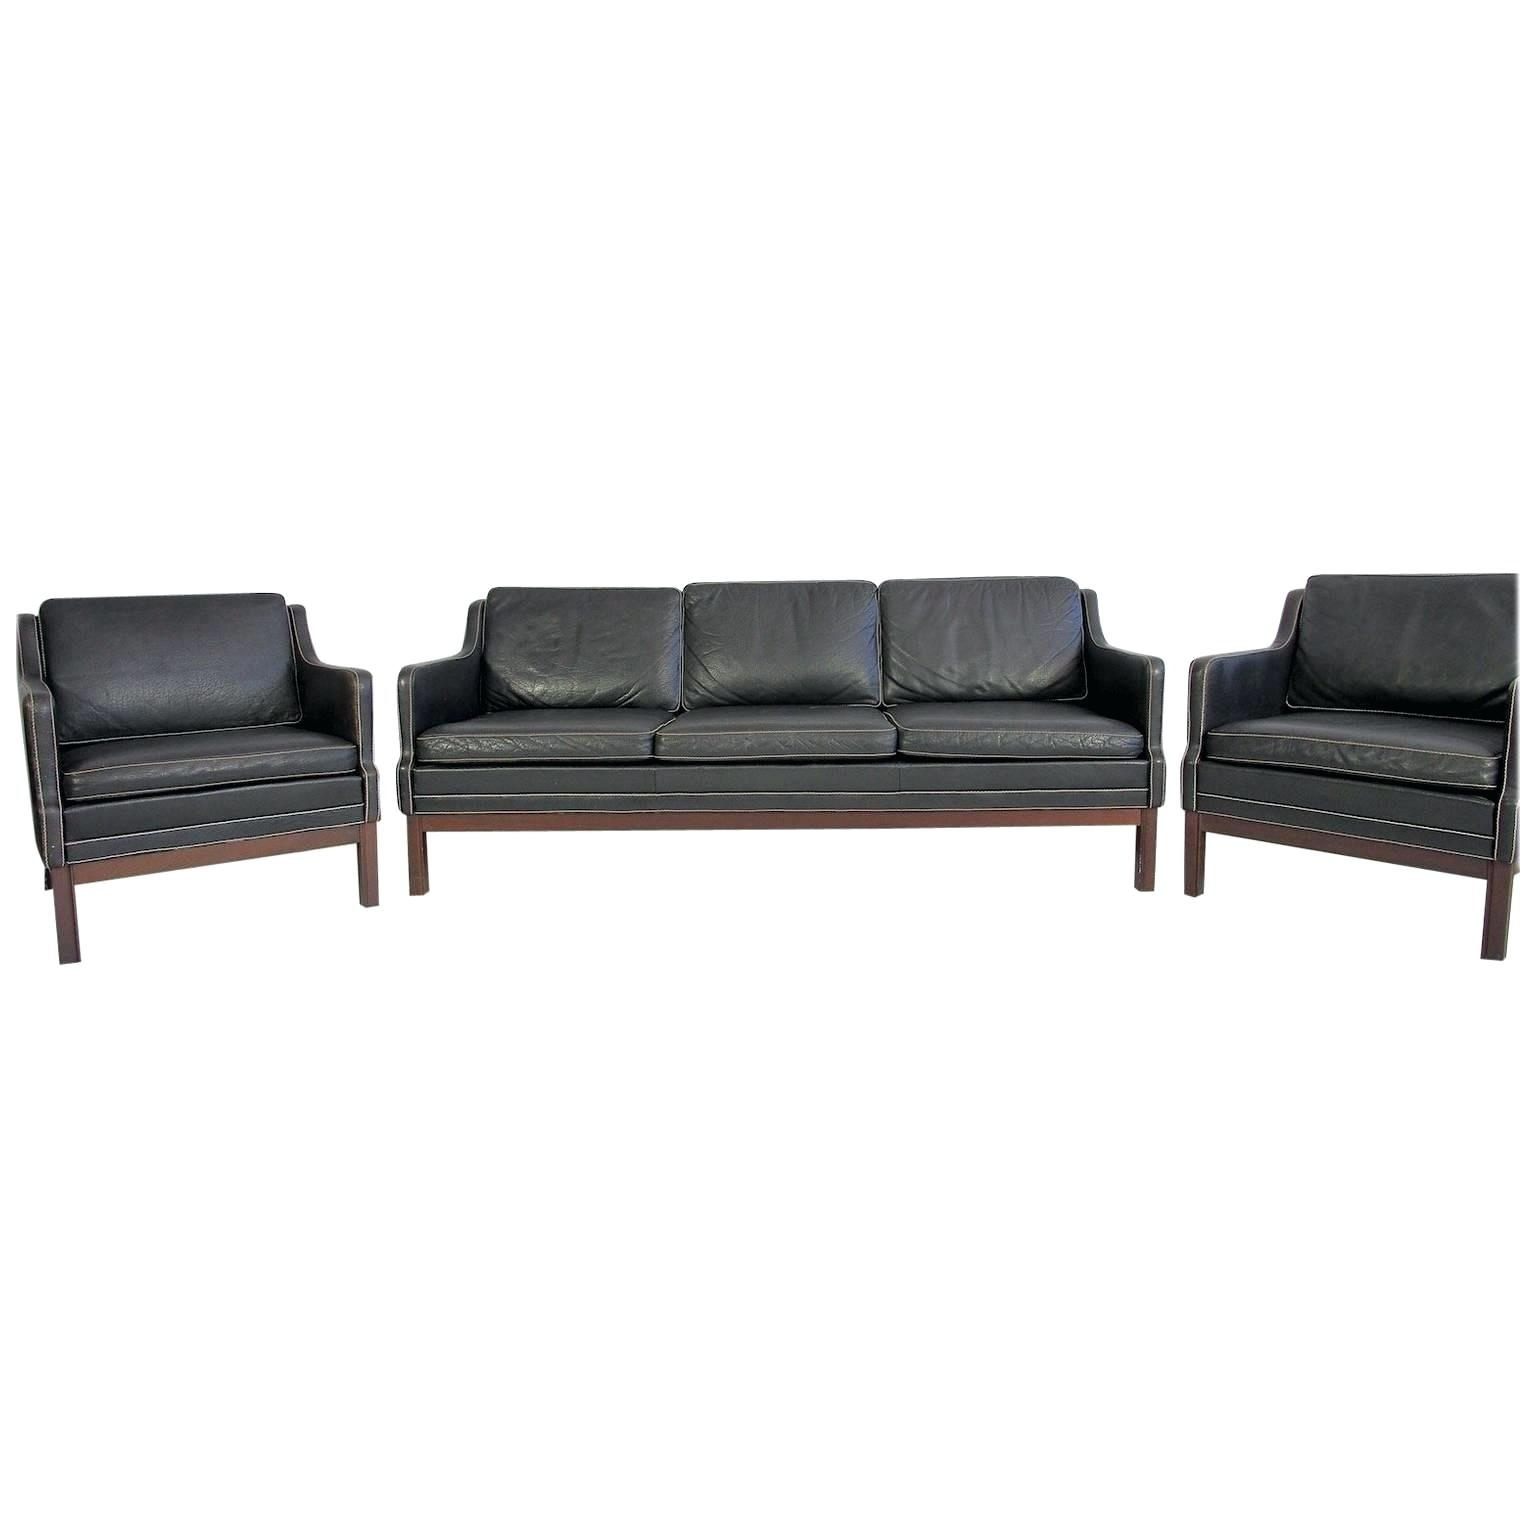 Buffalo Leather Couch Se Buffalo Leather Sectional Sofa – Thedropin (View 3 of 15)